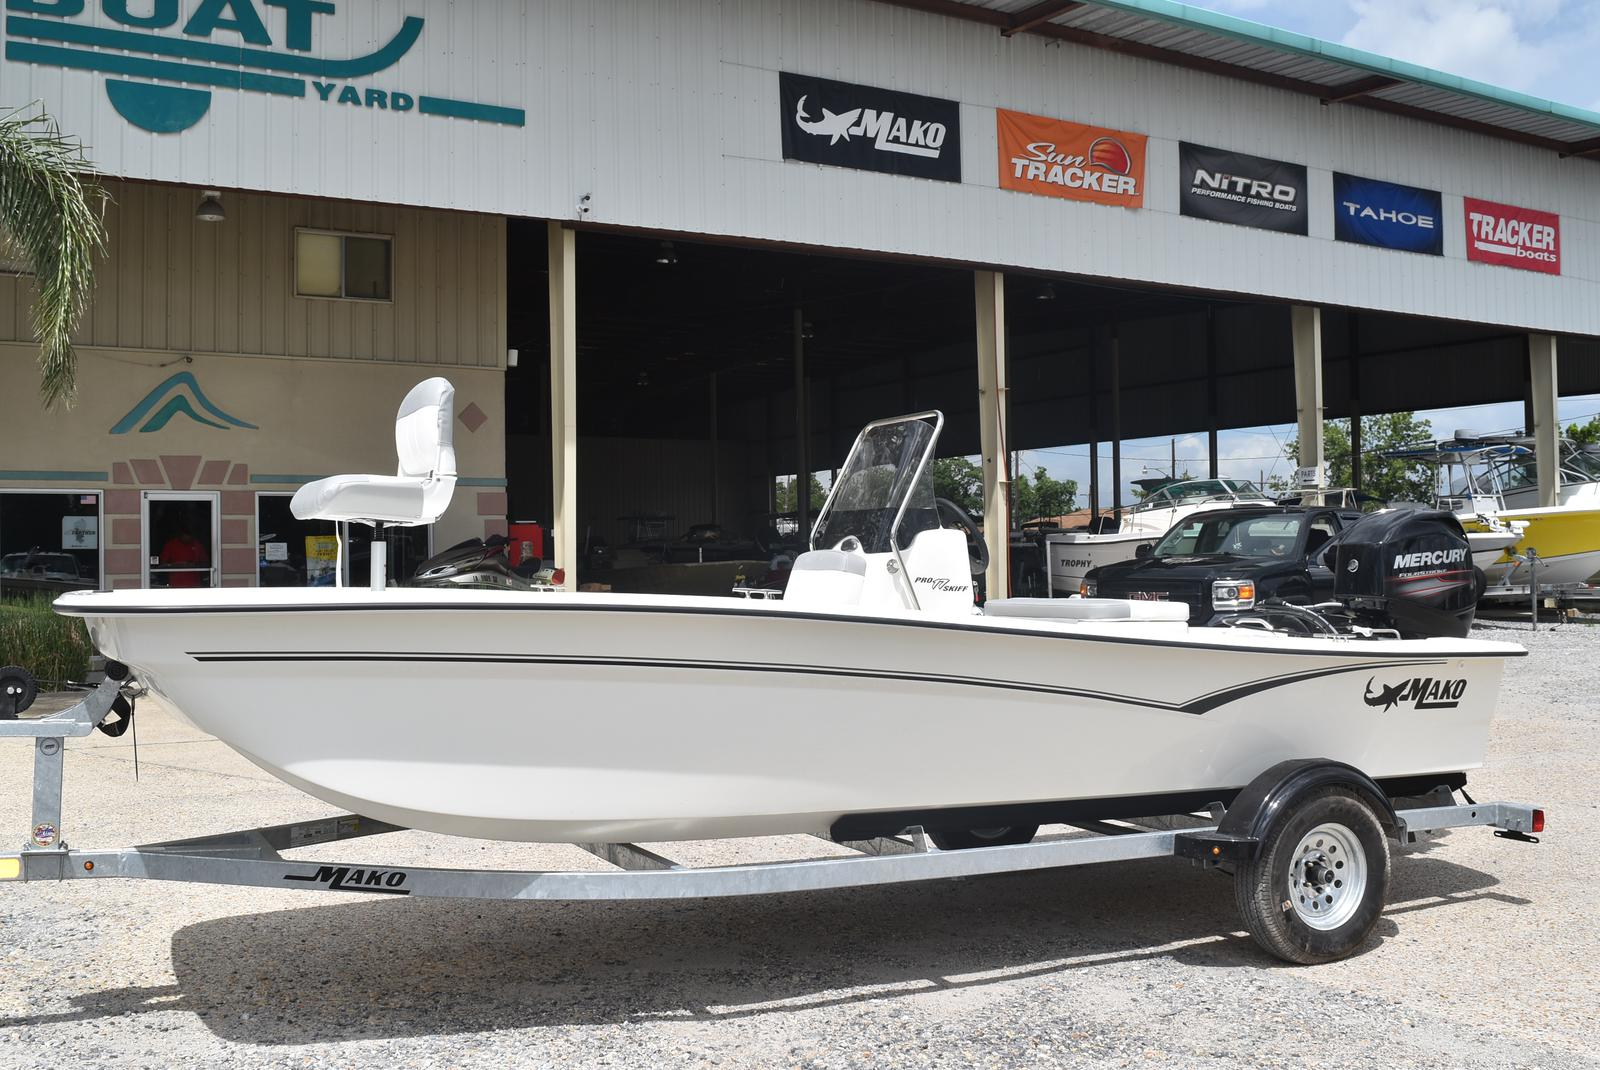 2020 Mako boat for sale, model of the boat is Pro Skiff 17, 75 ELPT & Image # 88 of 702